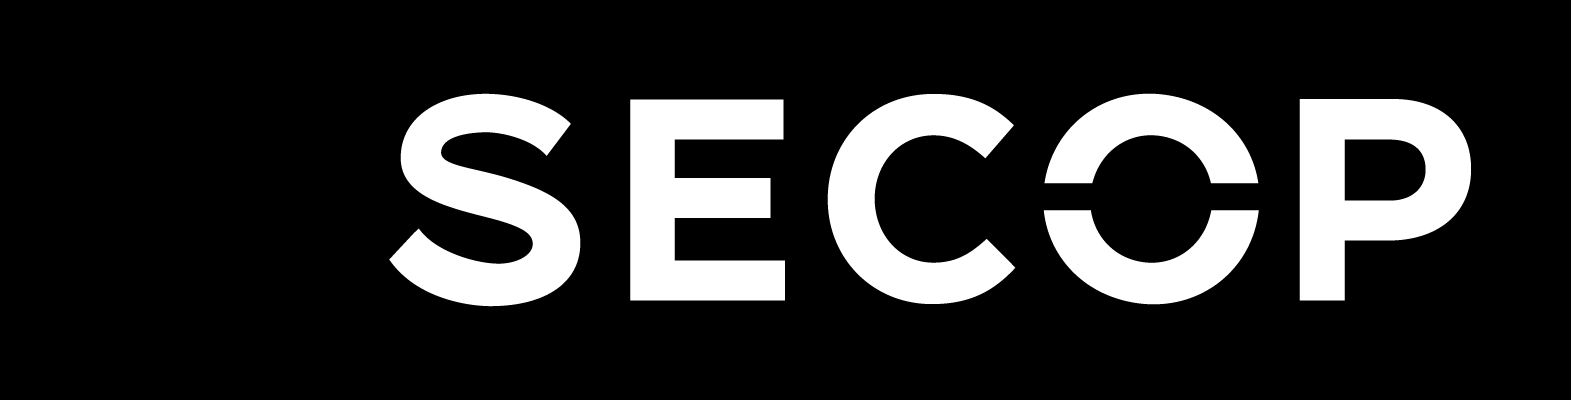 SECOP_Logo